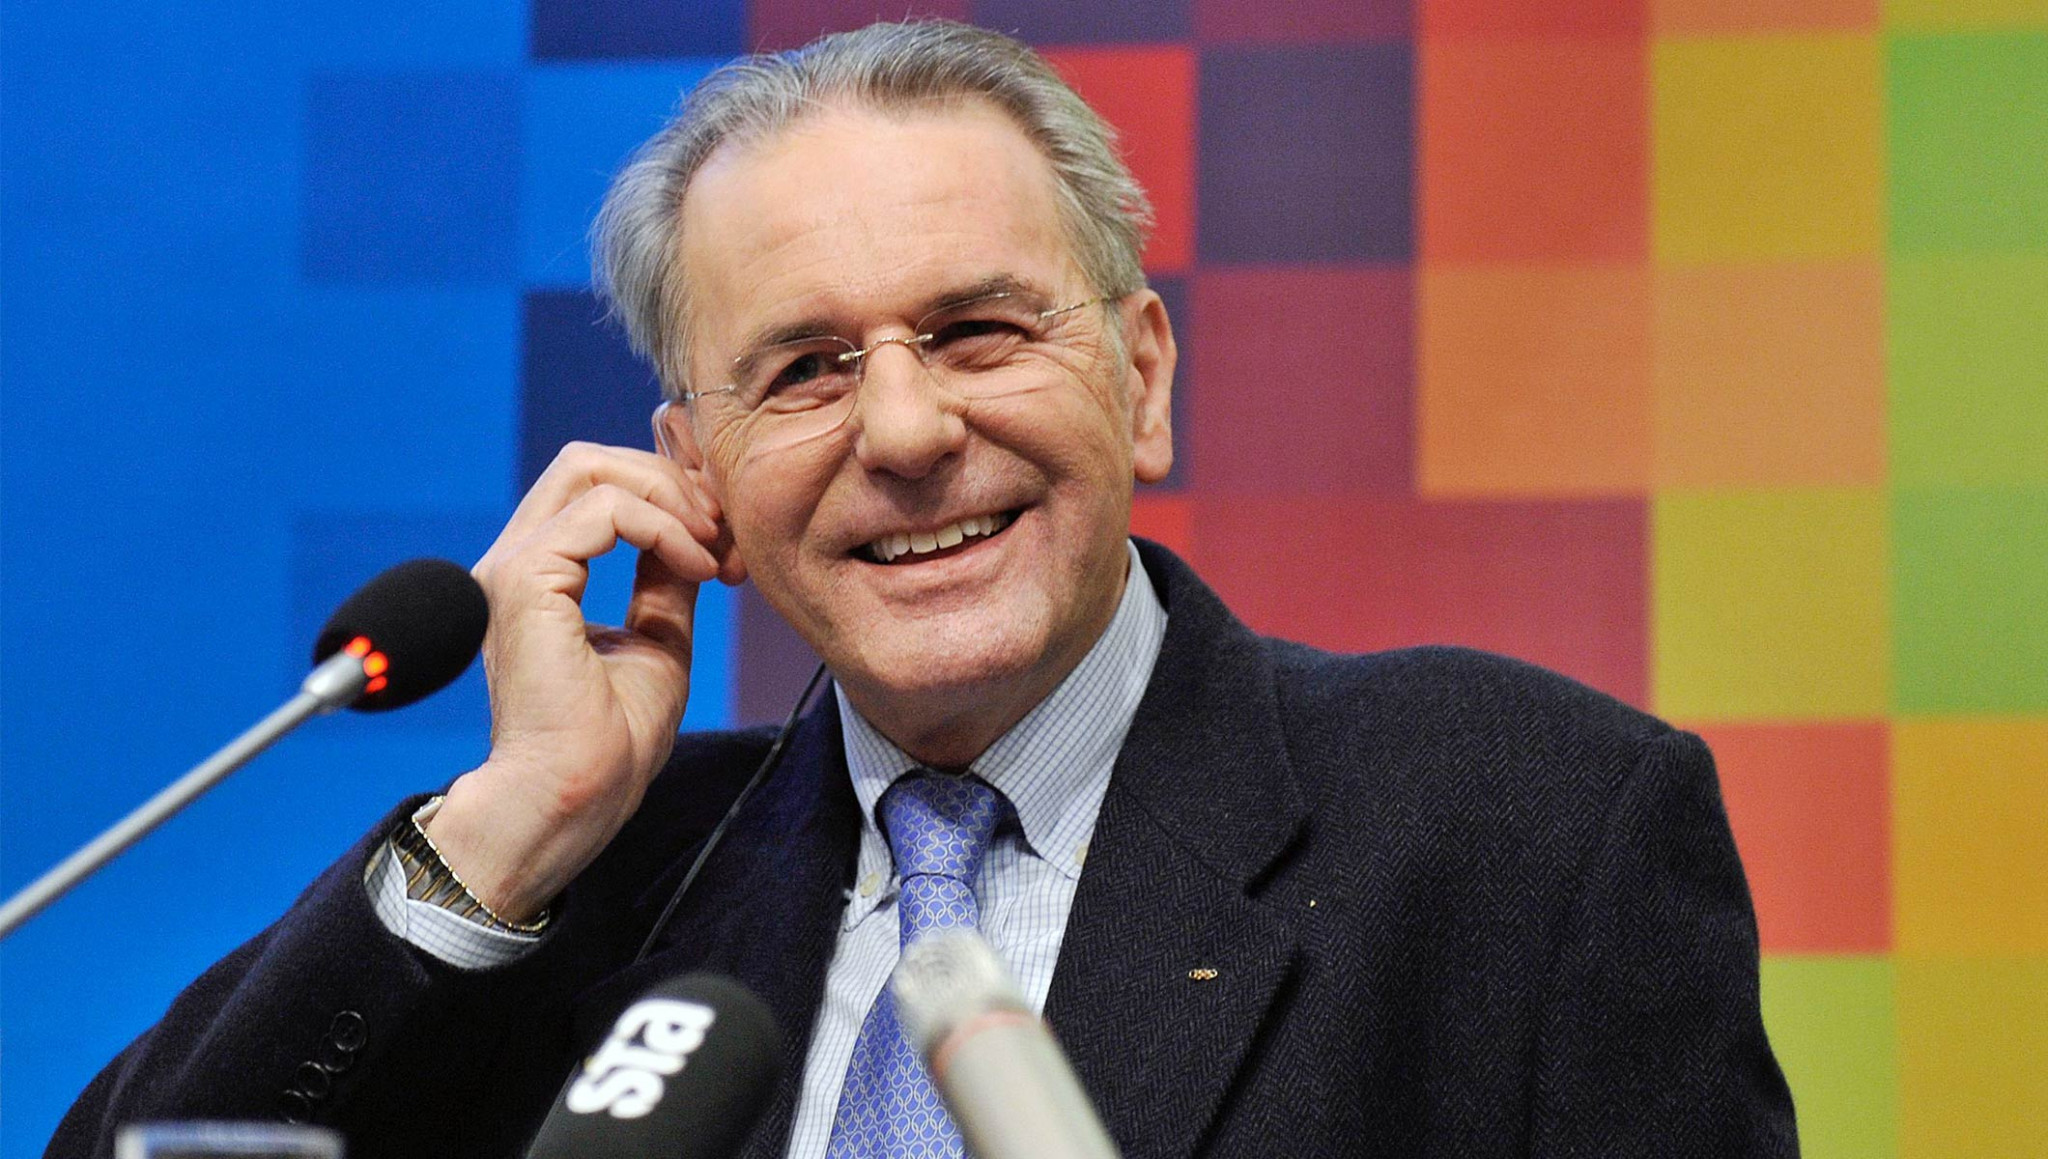 Thomas Bach's predecessor as IOC President, Jacques Rogge, had a very different style ©IOC